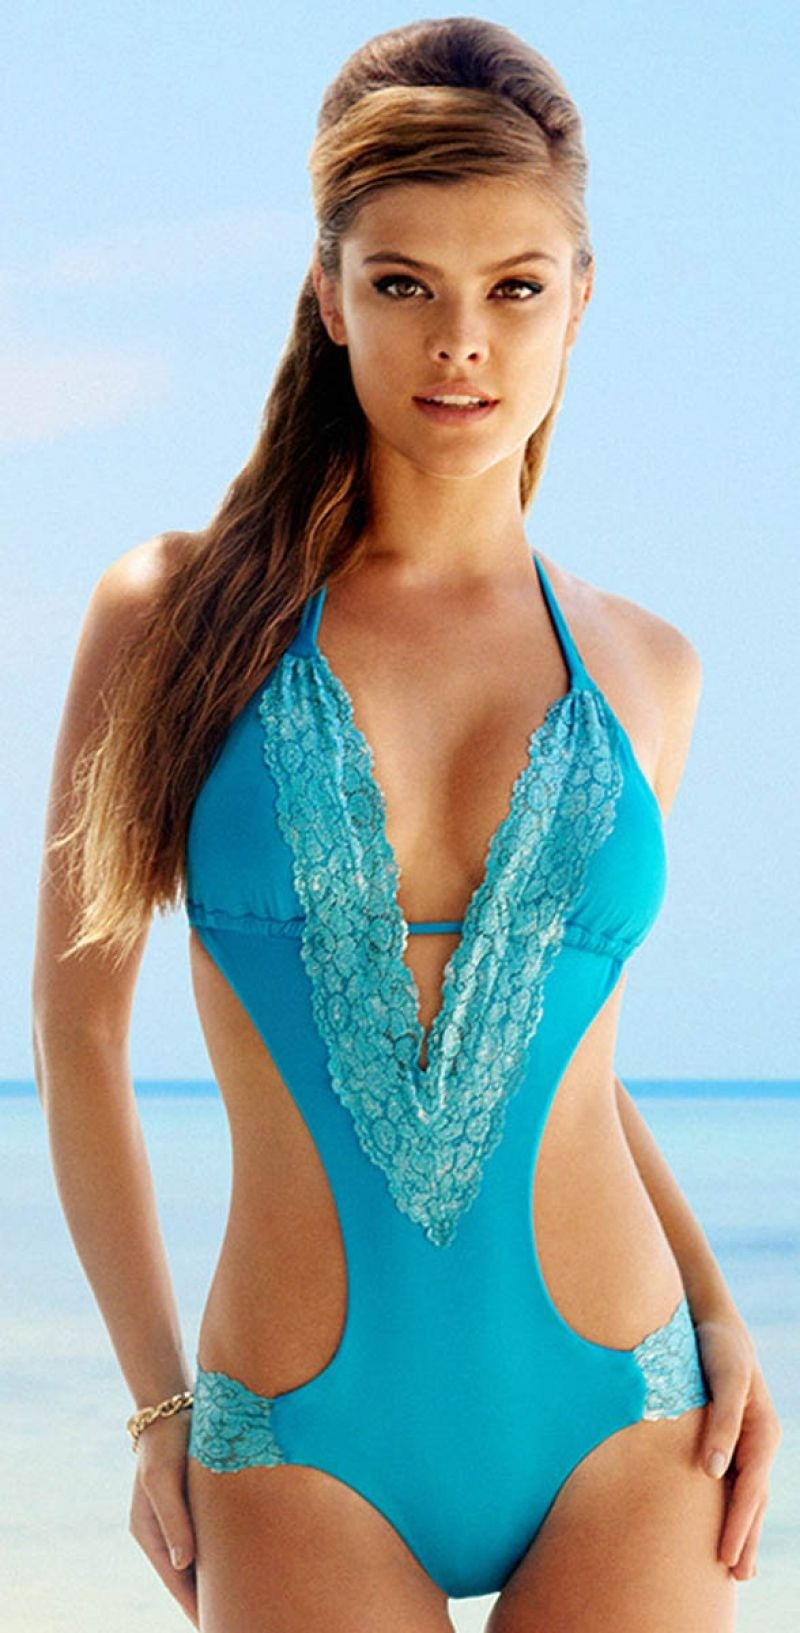 Nina Agdal Beach Bunny Swimsuit October